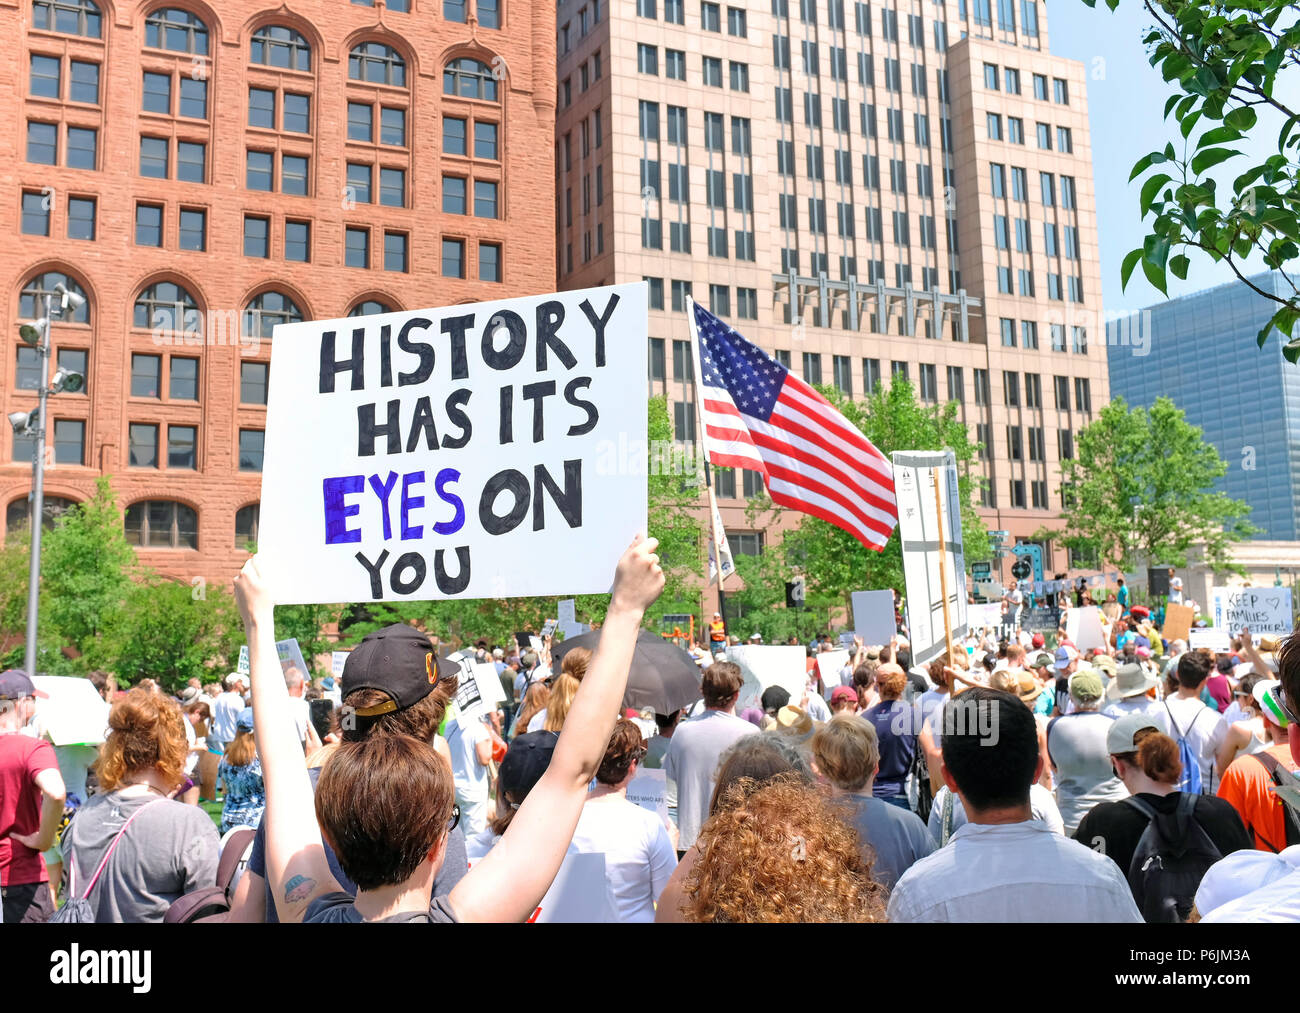 Cleveland, United States.  30th June, 2018.Protestors take to Public Square in downtown Cleveland, Ohio in opposition to the Trump administration policies separating children from parents at the borders. Credit: Mark Kanning/Alamy Live News - Stock Image